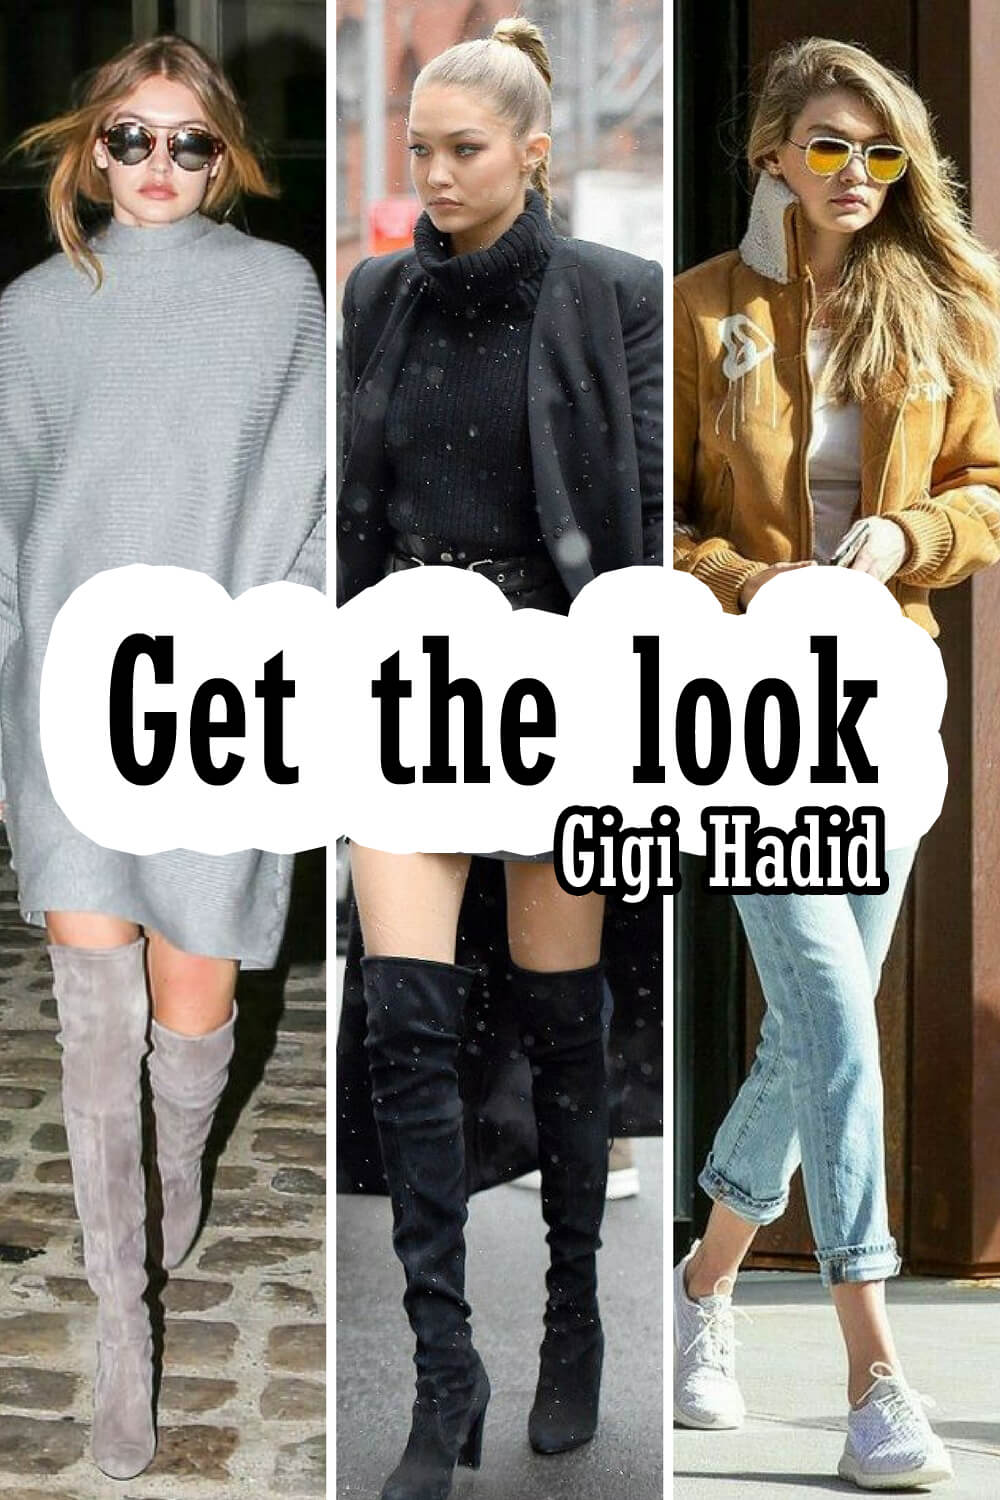 Get the look Gigi Hadid (en soldes)